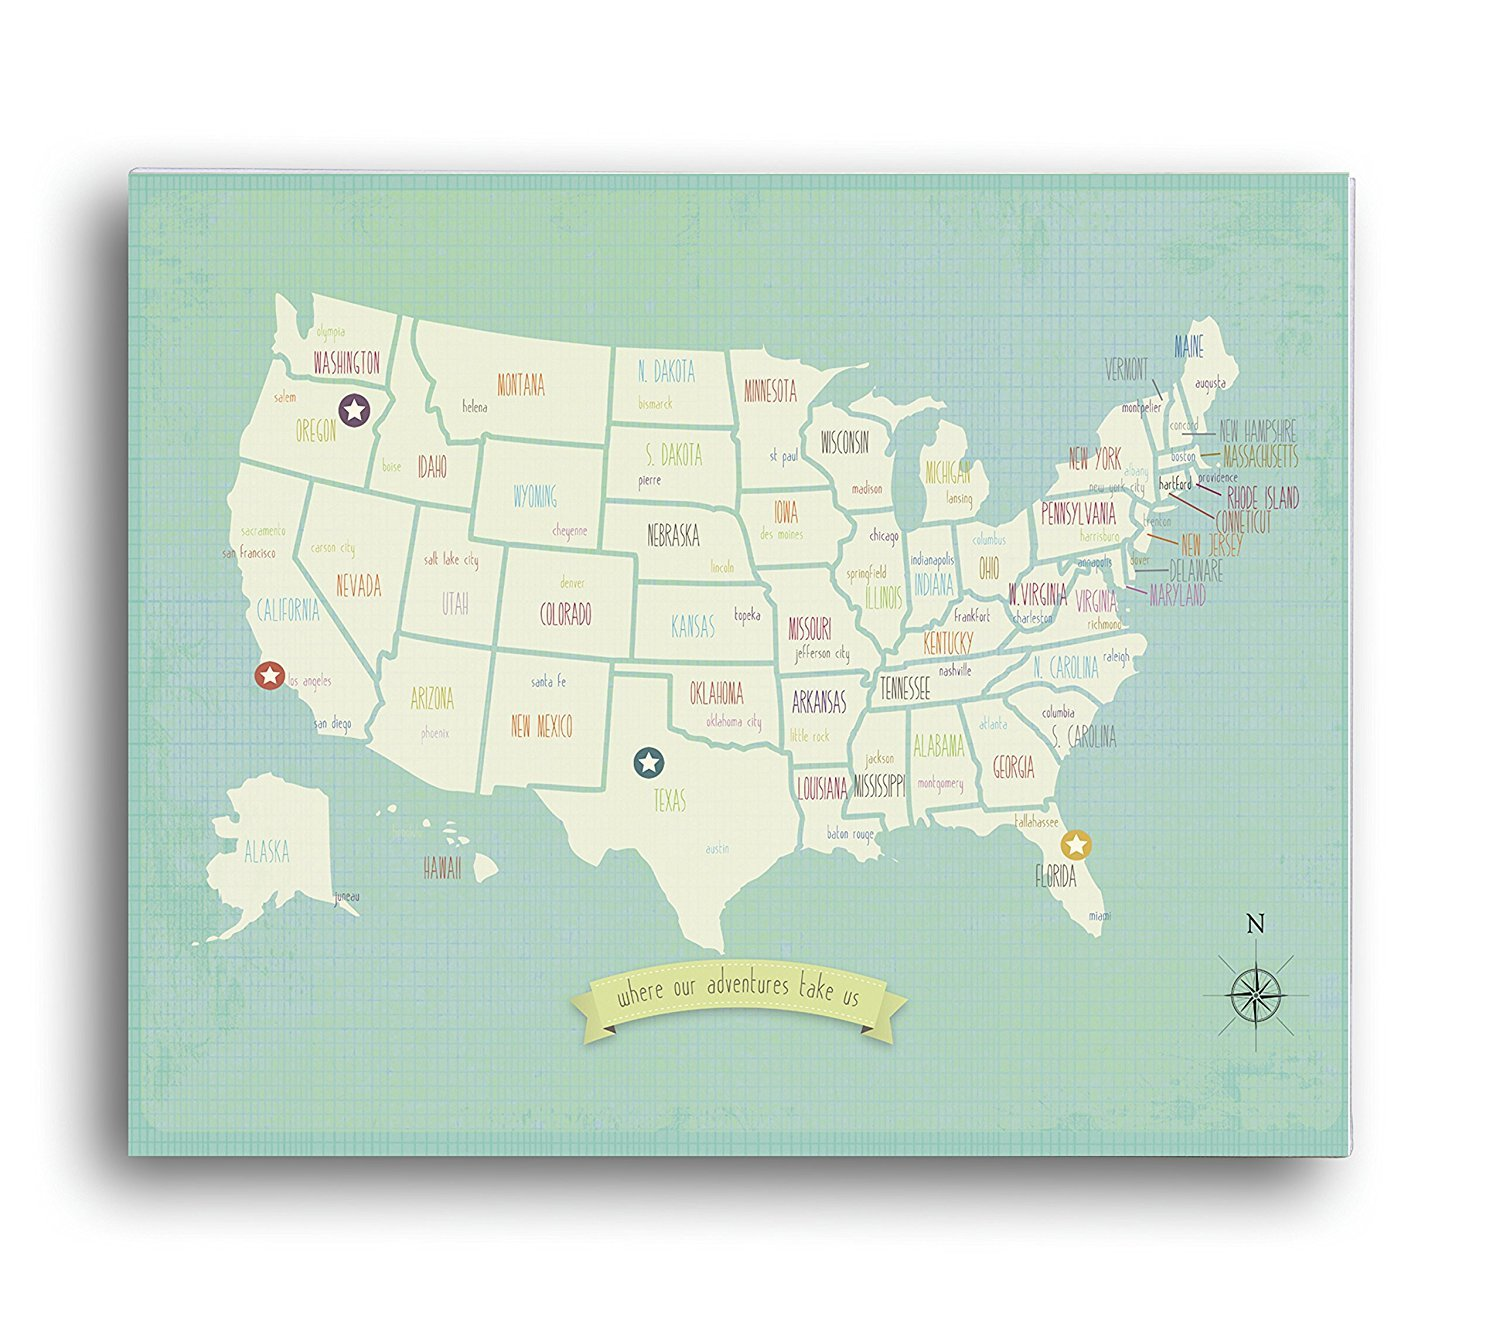 Kids USA Map Travel Nursery Decor Personalized Travel Map USA Travel Map Wall Art Print Gender Neutral Nursery Childrens Room Decor Customized Wall Map 16x20 Inch Canvas